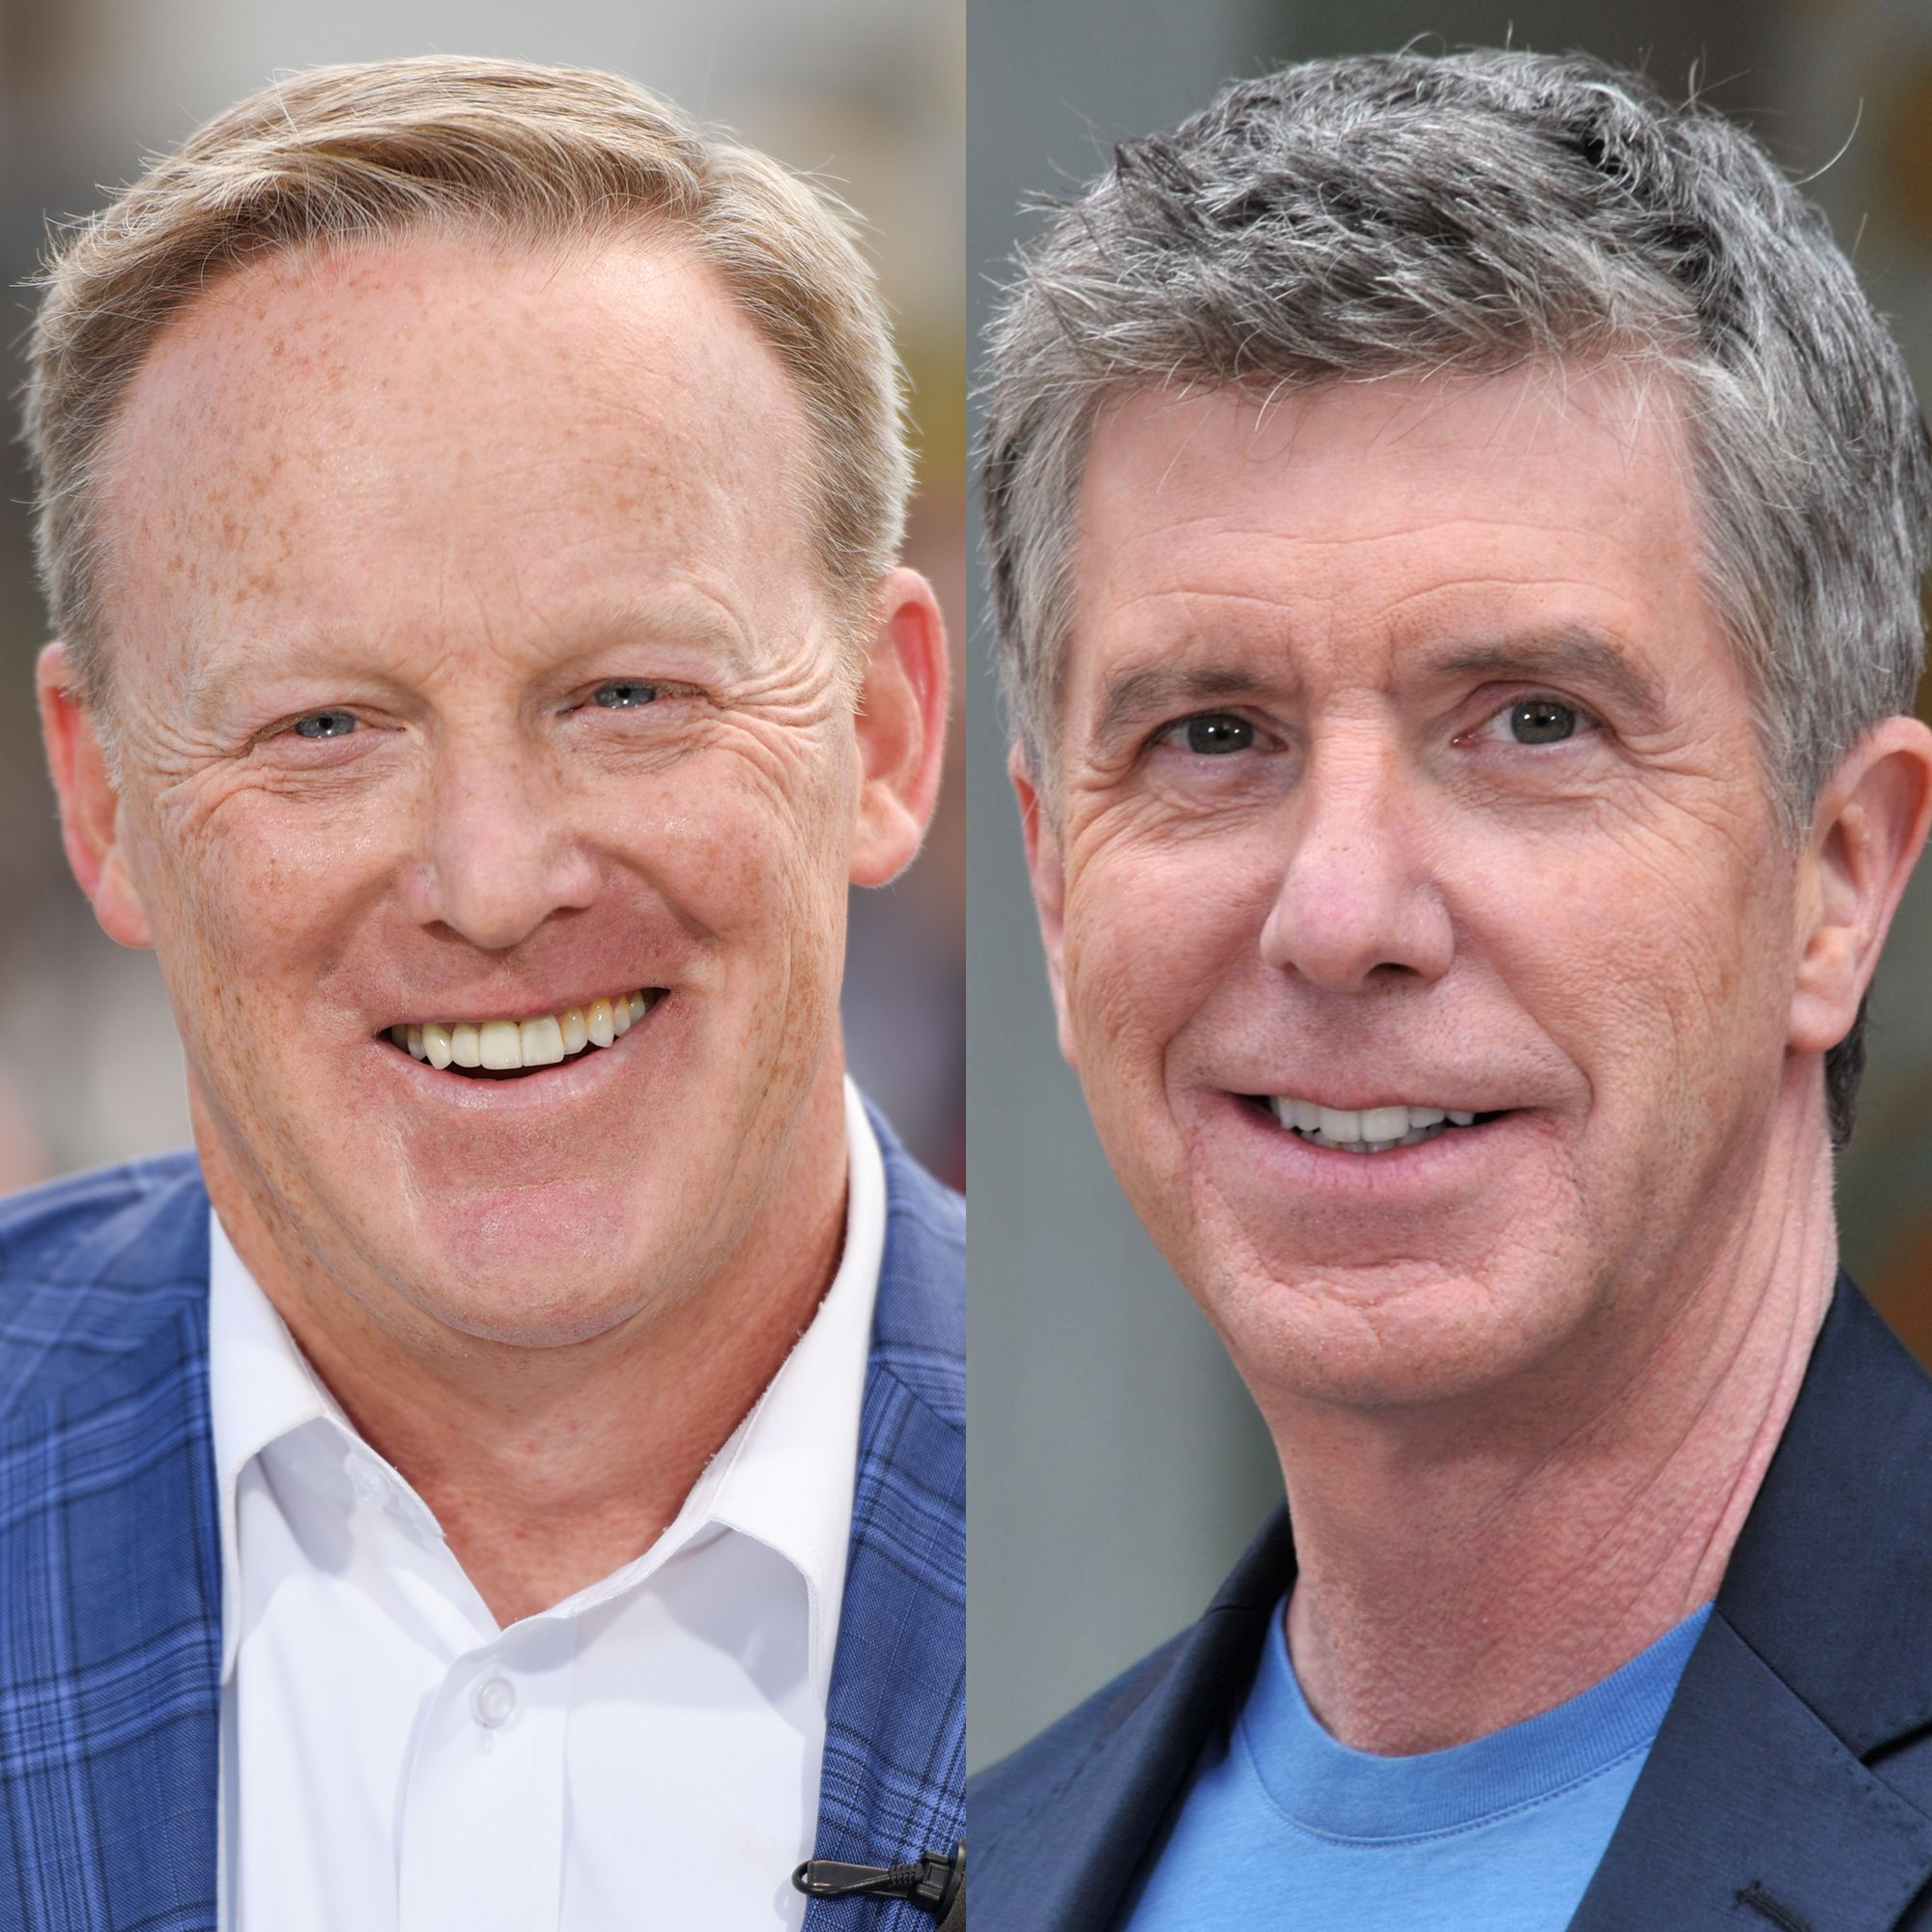 Dancing with the Stars Host Tom Bergeron Reacts to Sean Spicer's Casting